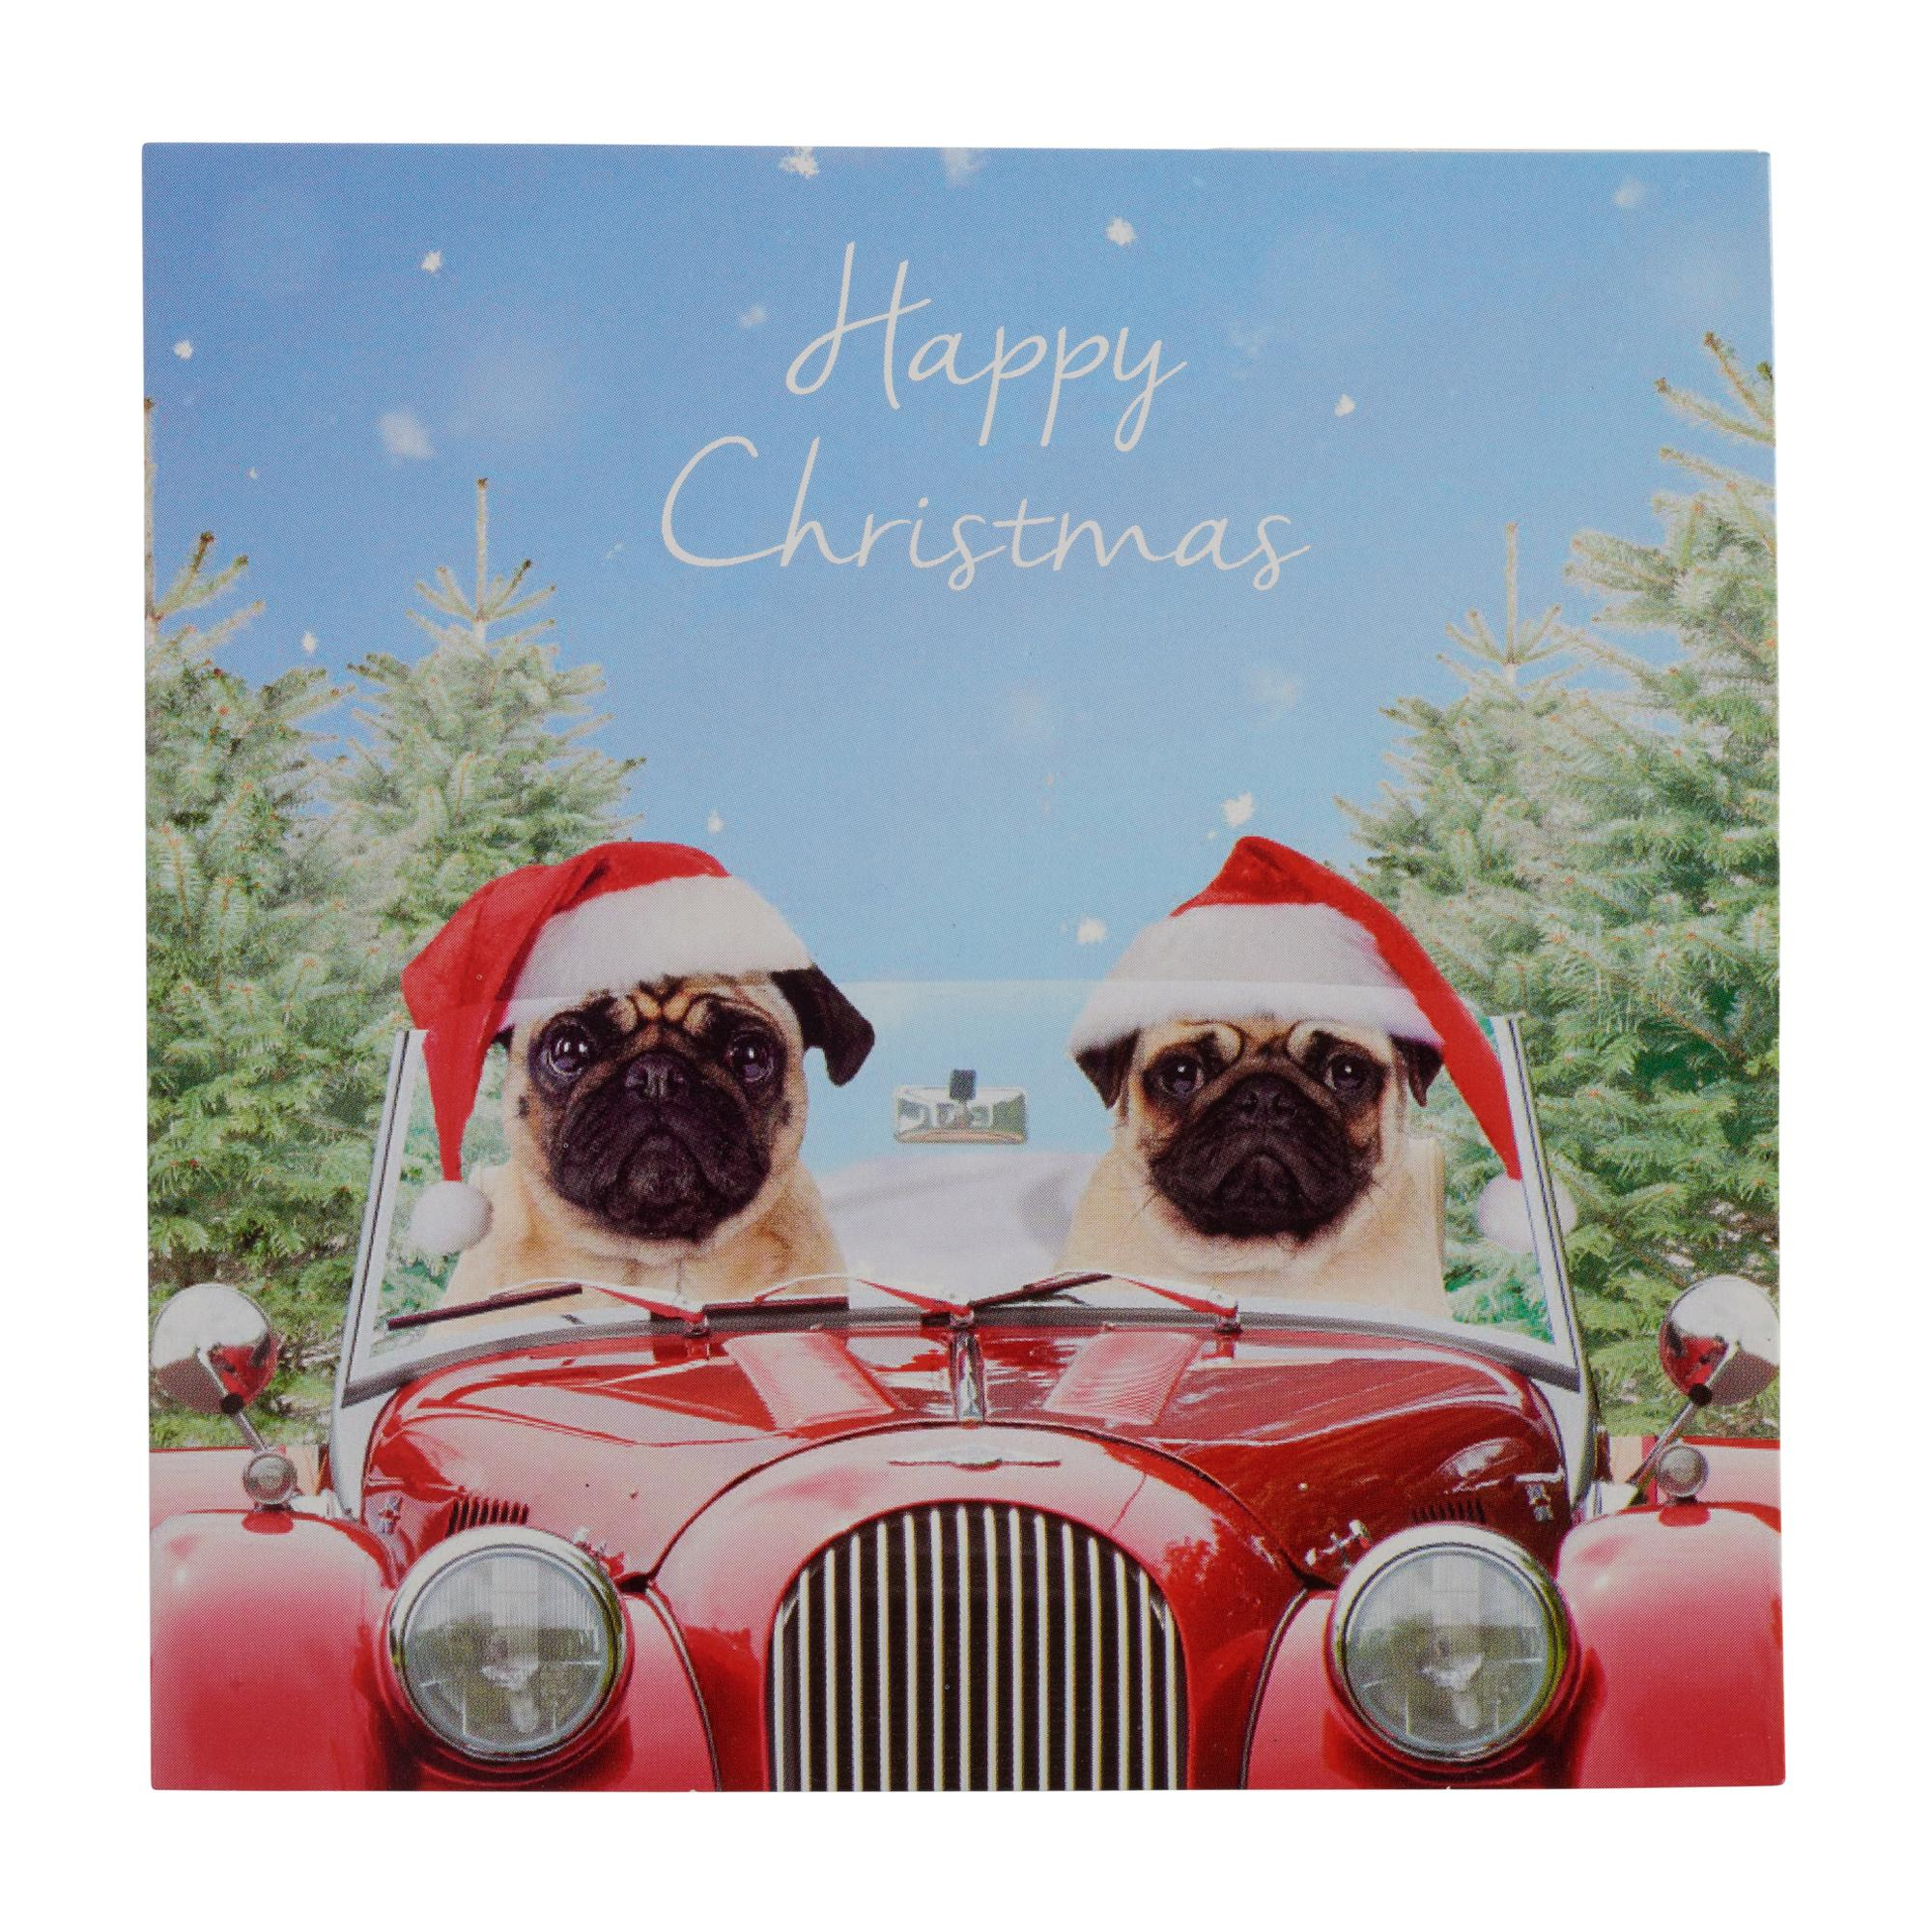 Pugs At Christmas Christmas Cards - Pack of 20  7f4f5145a13